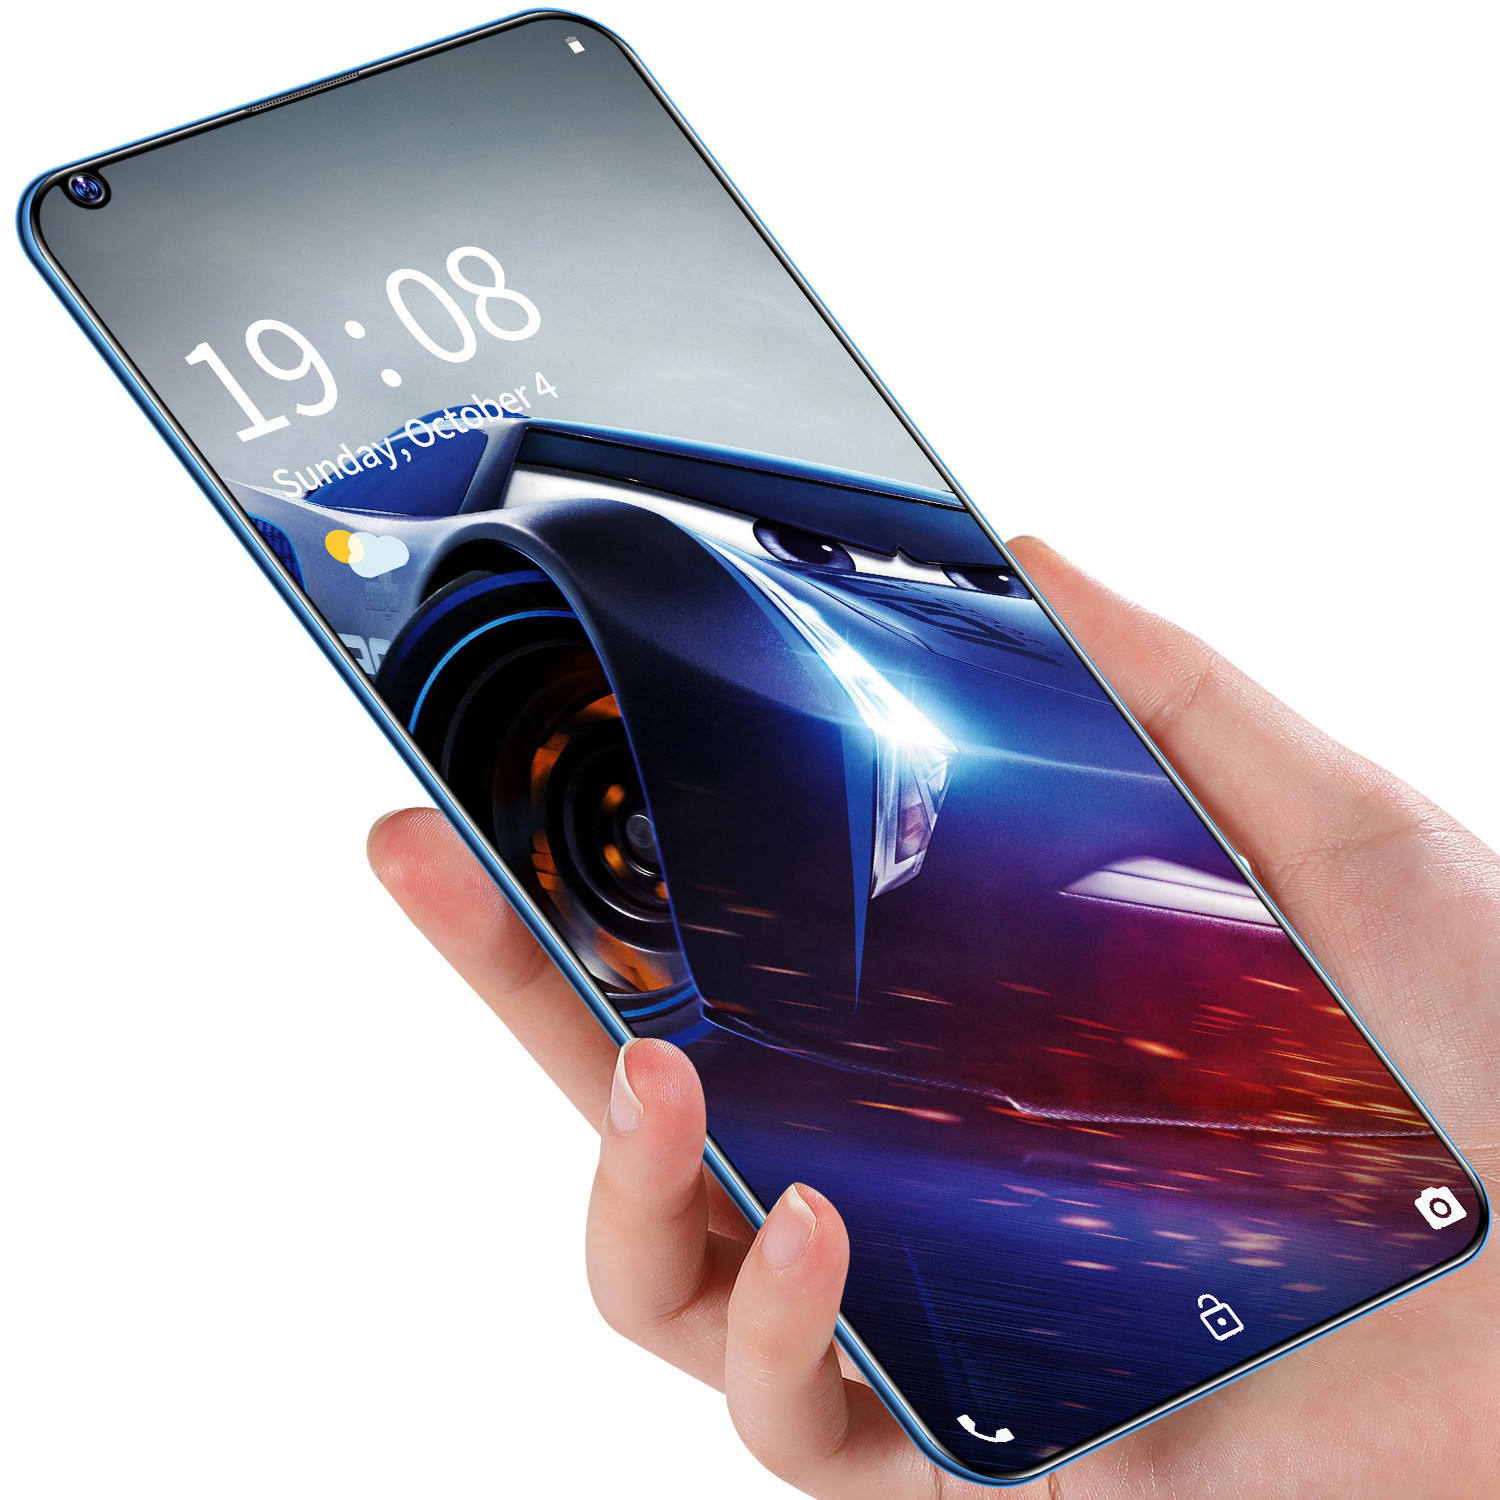 3G Smart Phone 6.72 Inch 720*1560 High-Definition Gebogen Scherm SC7731E 2Gb Ram 16Gb rom Android 8.1 2300Mah <span class=keywords><strong>Mobiele</strong></span> <span class=keywords><strong>Telefoon</strong></span>